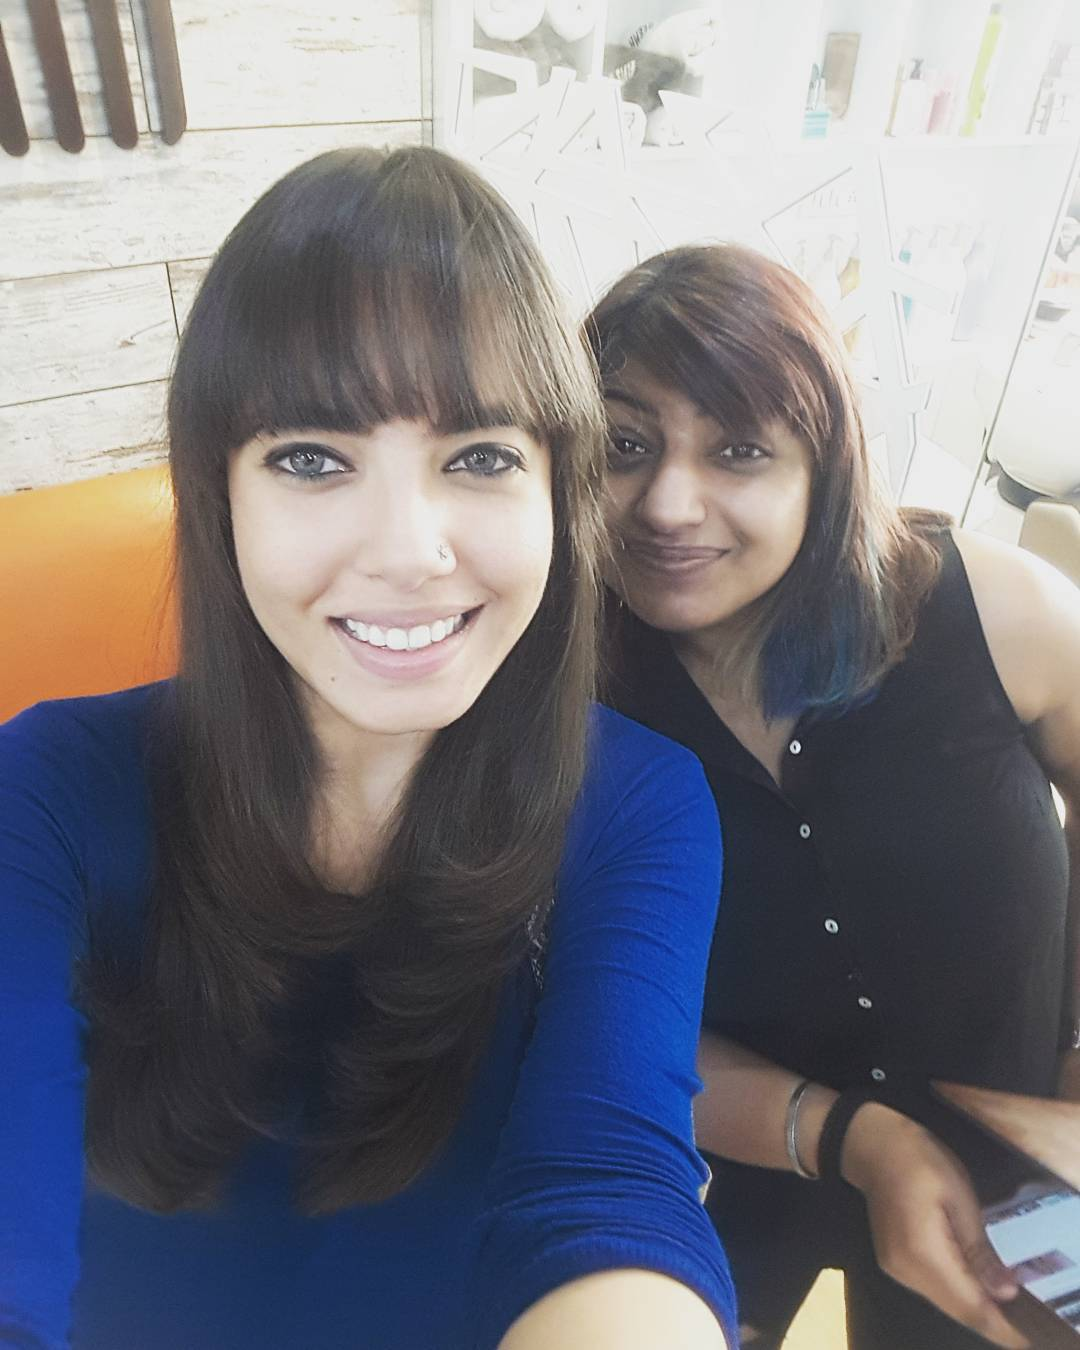 3 Here Are The Hairstylists Women Of Delhi Are Trusting For Gorgeous Haircuts - ishita umre